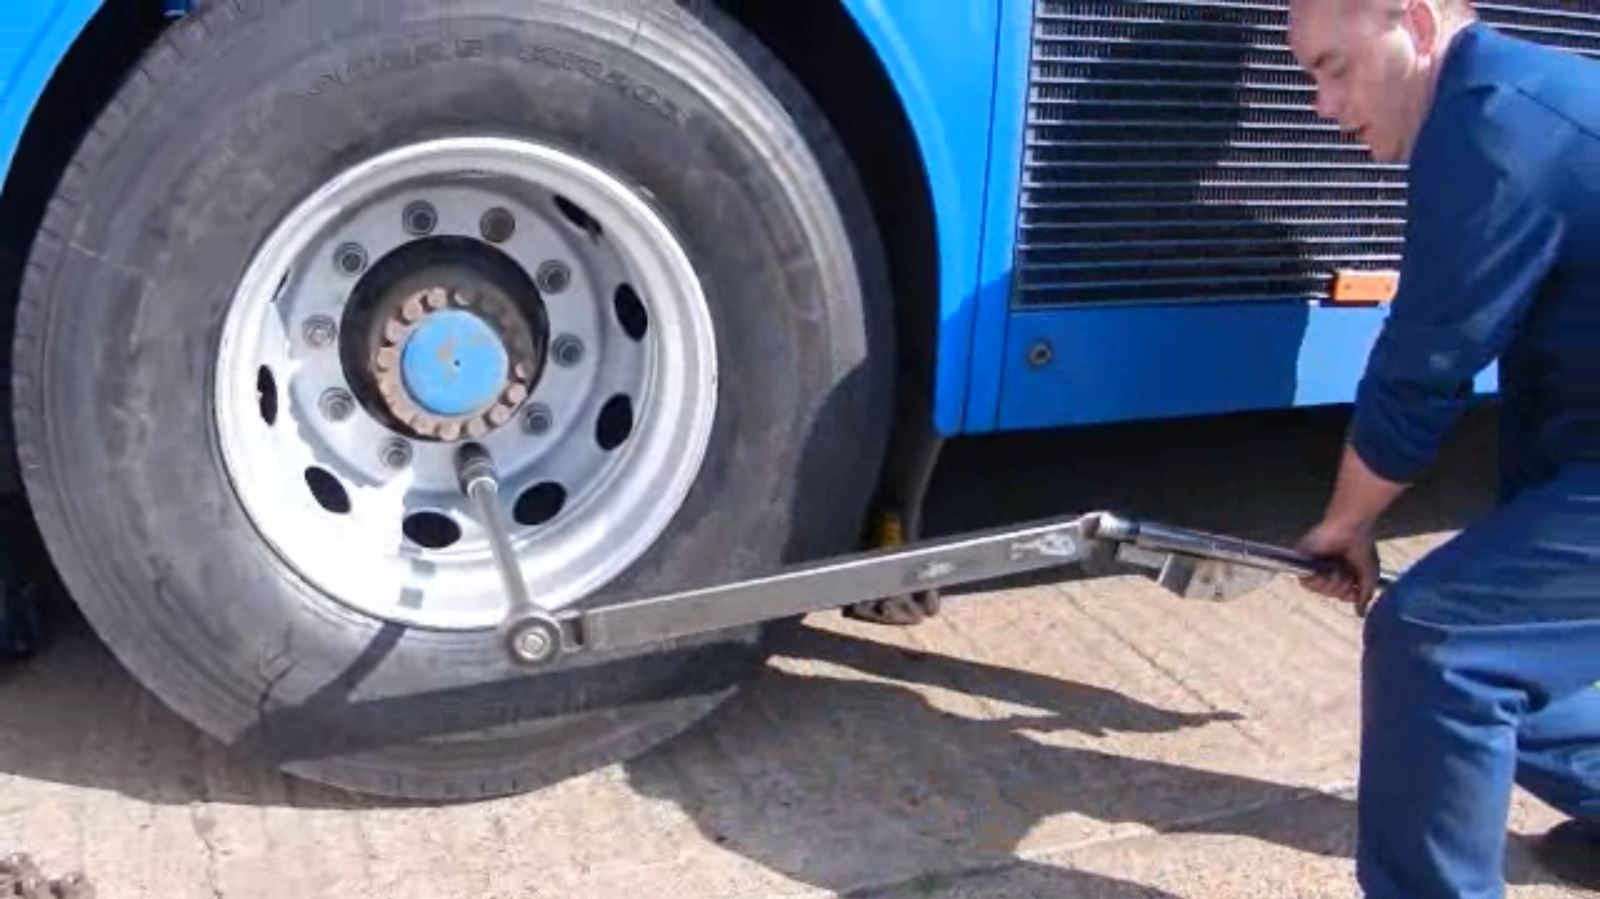 Torque Wrench in Action